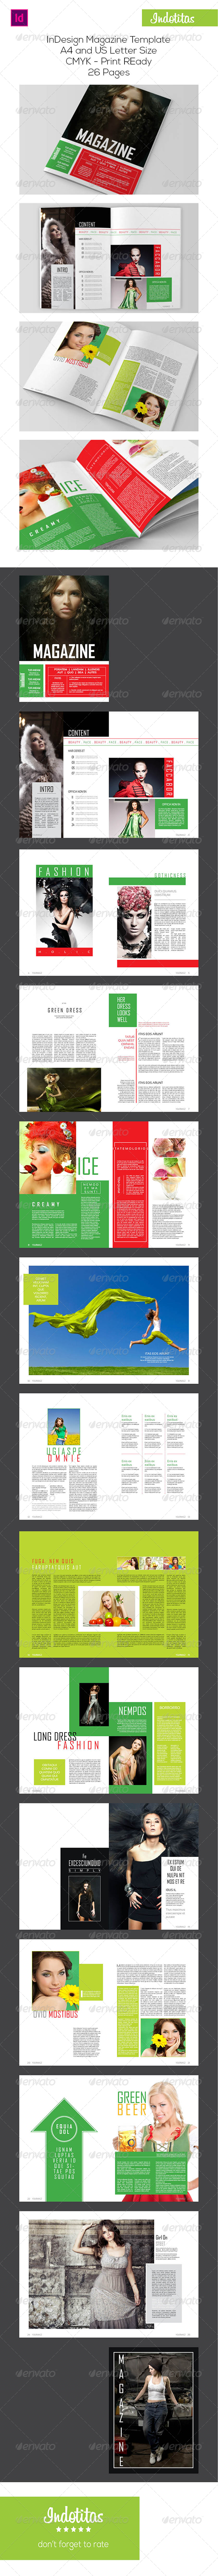 GraphicRiver InDesign Magazine Template 7494347